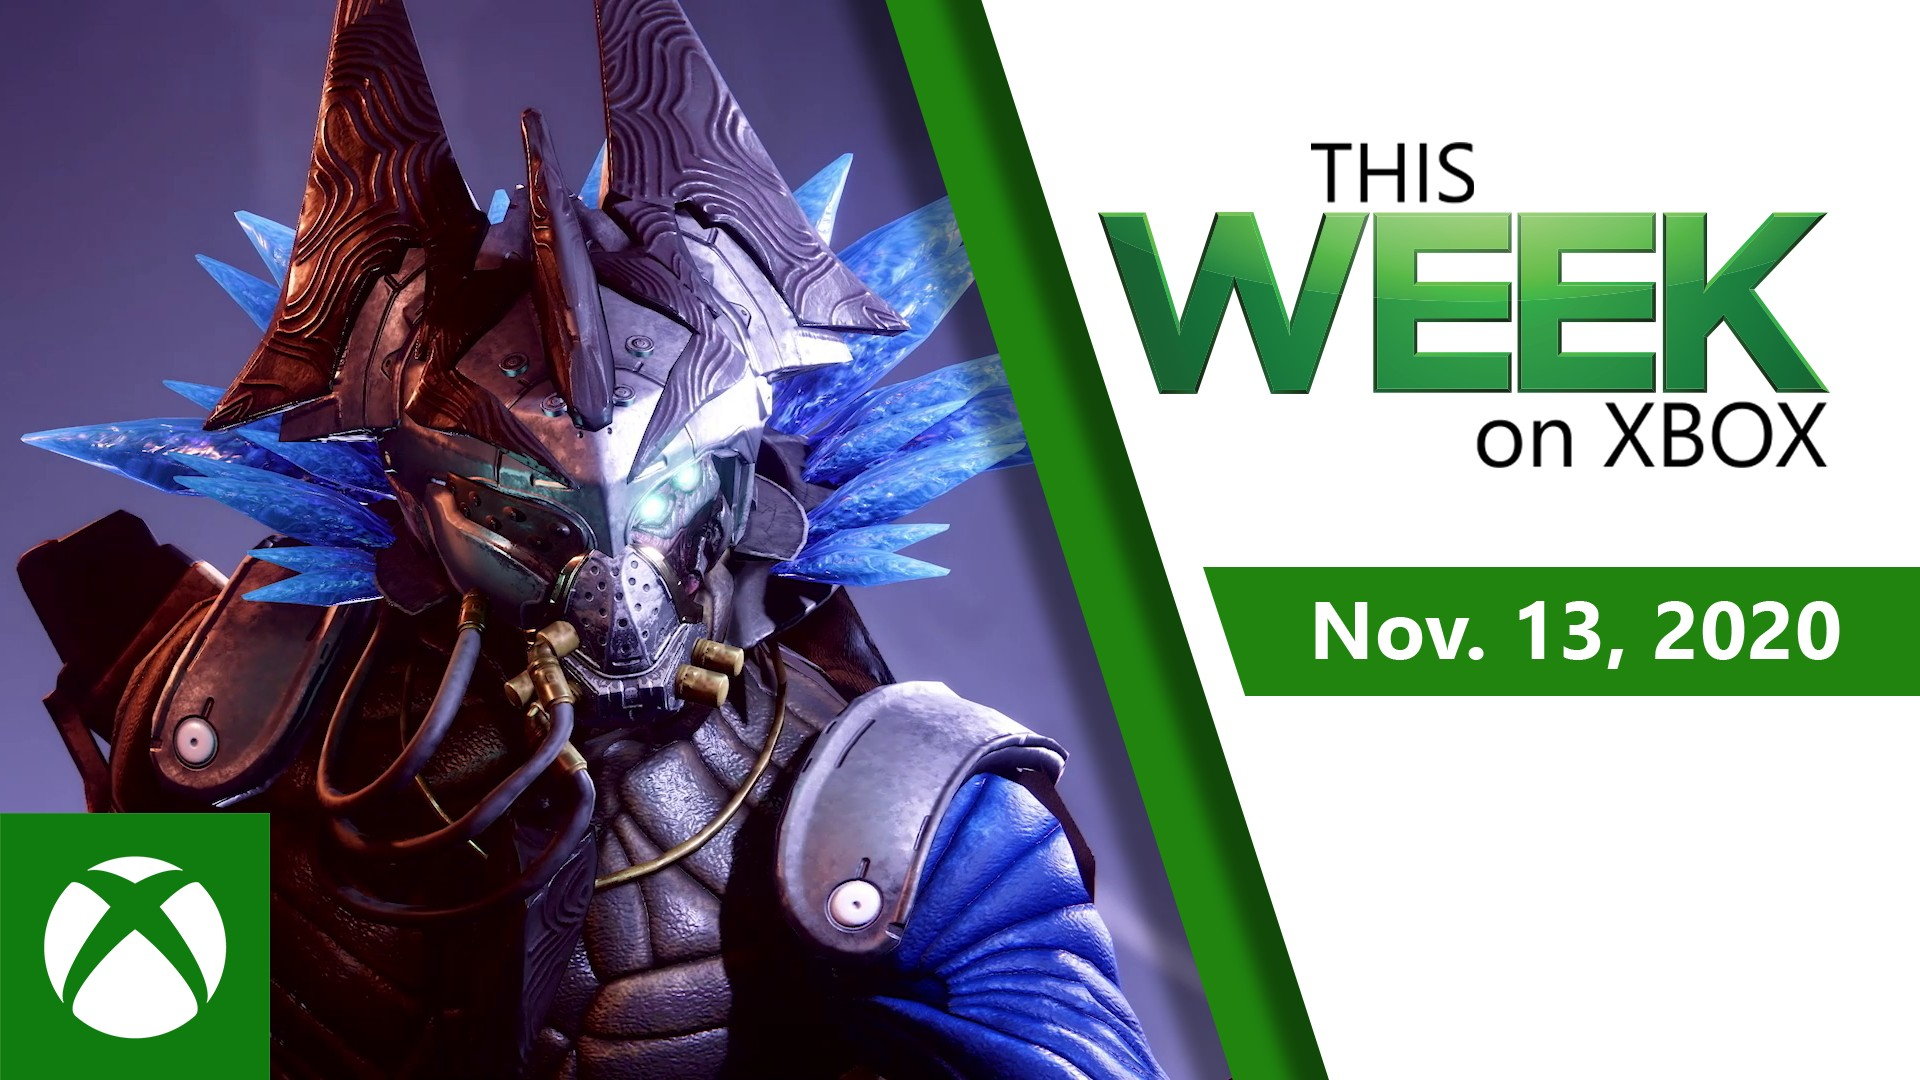 Video For This Week on Xbox: November 13, 2020